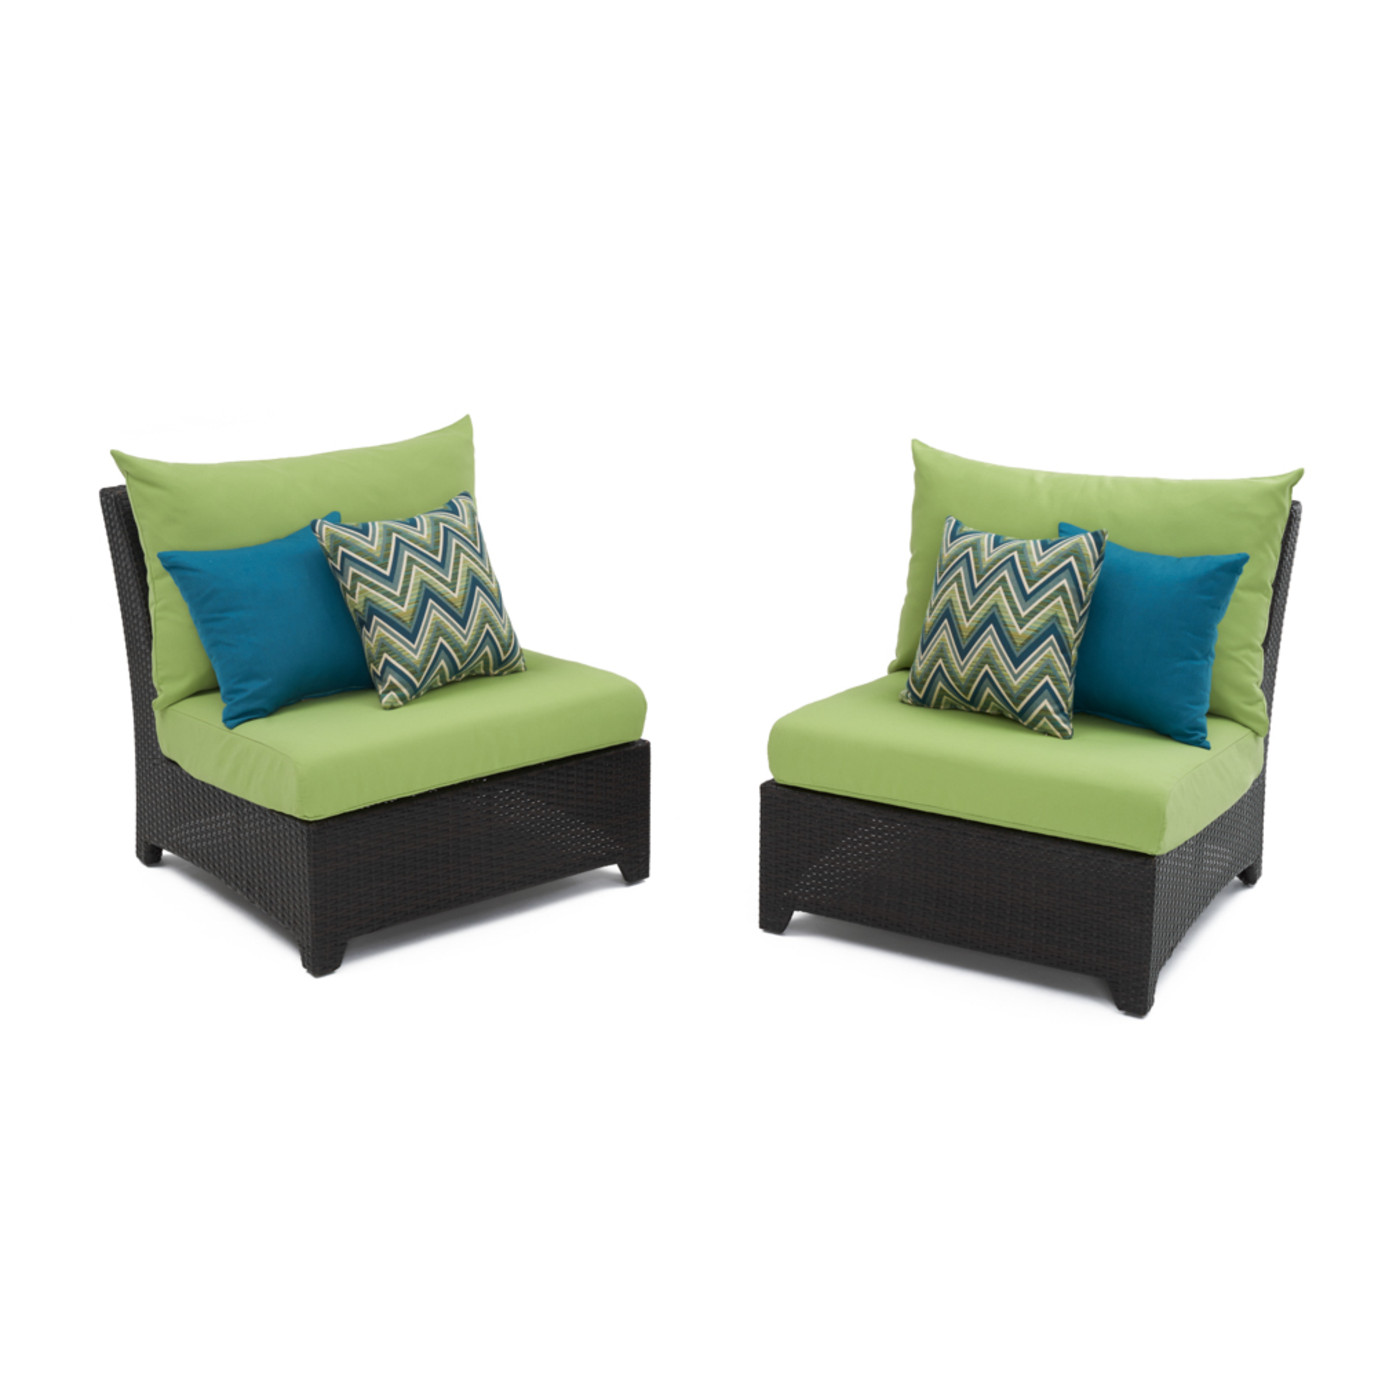 Deco™ Armless Chairs - Ginkgo Green